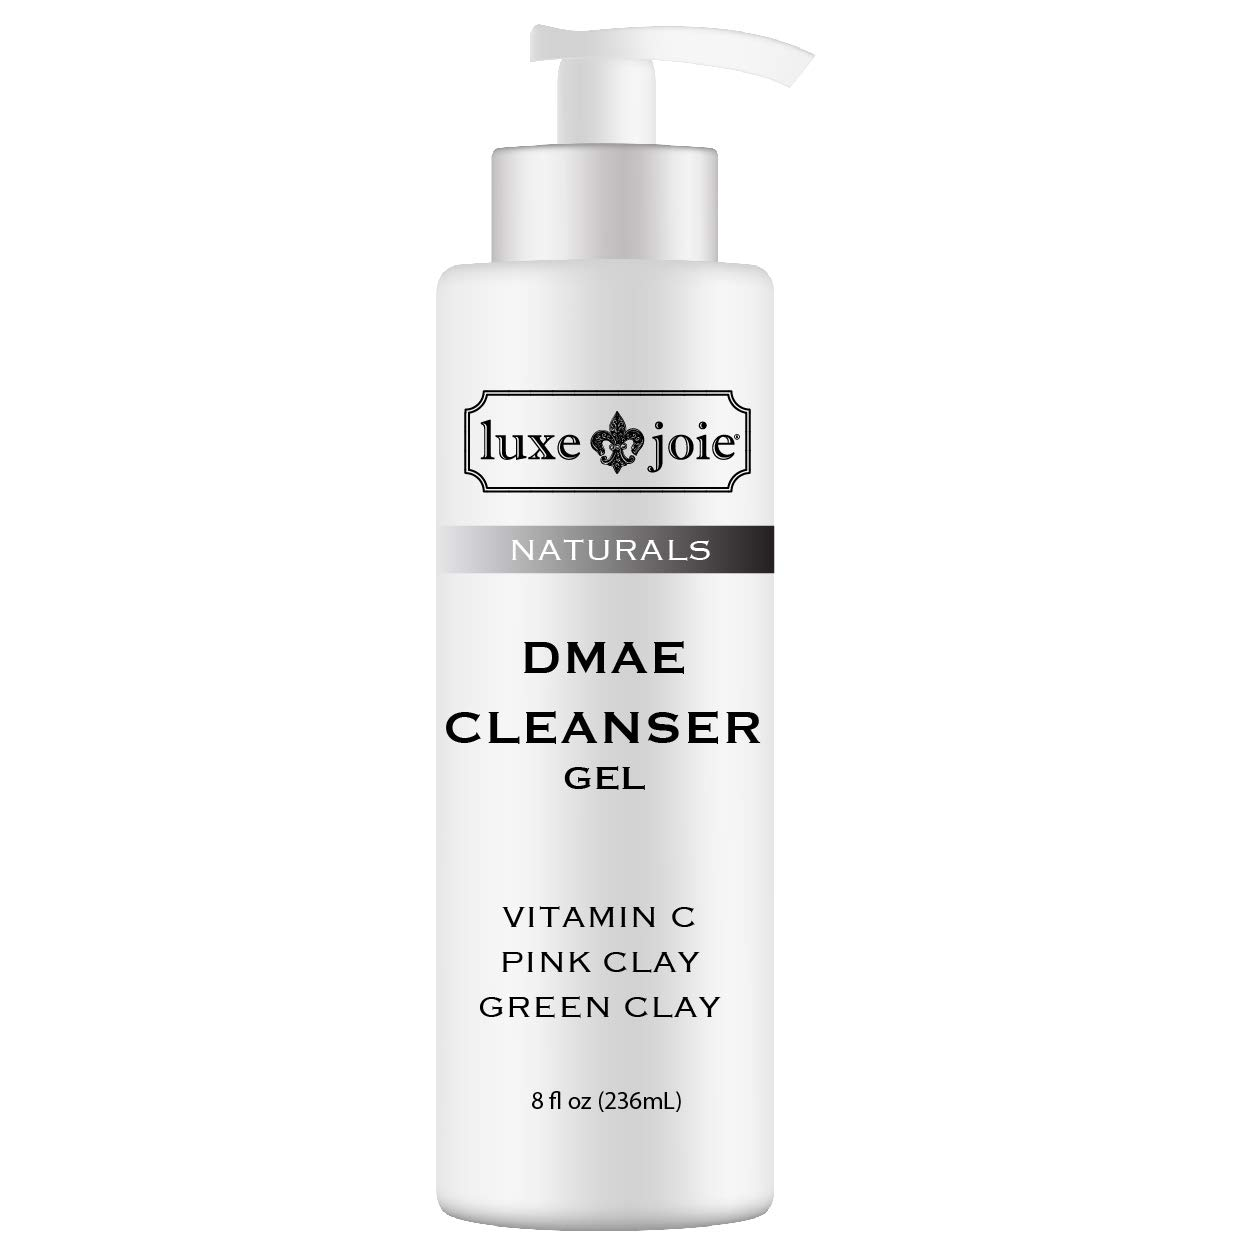 DMAE Cleanser Gel Facial Wash VEGAN No Added Parabens Phthalates Gluten Anti-Wrinkle Anti-Aging Dry Sensitive Normal Skin